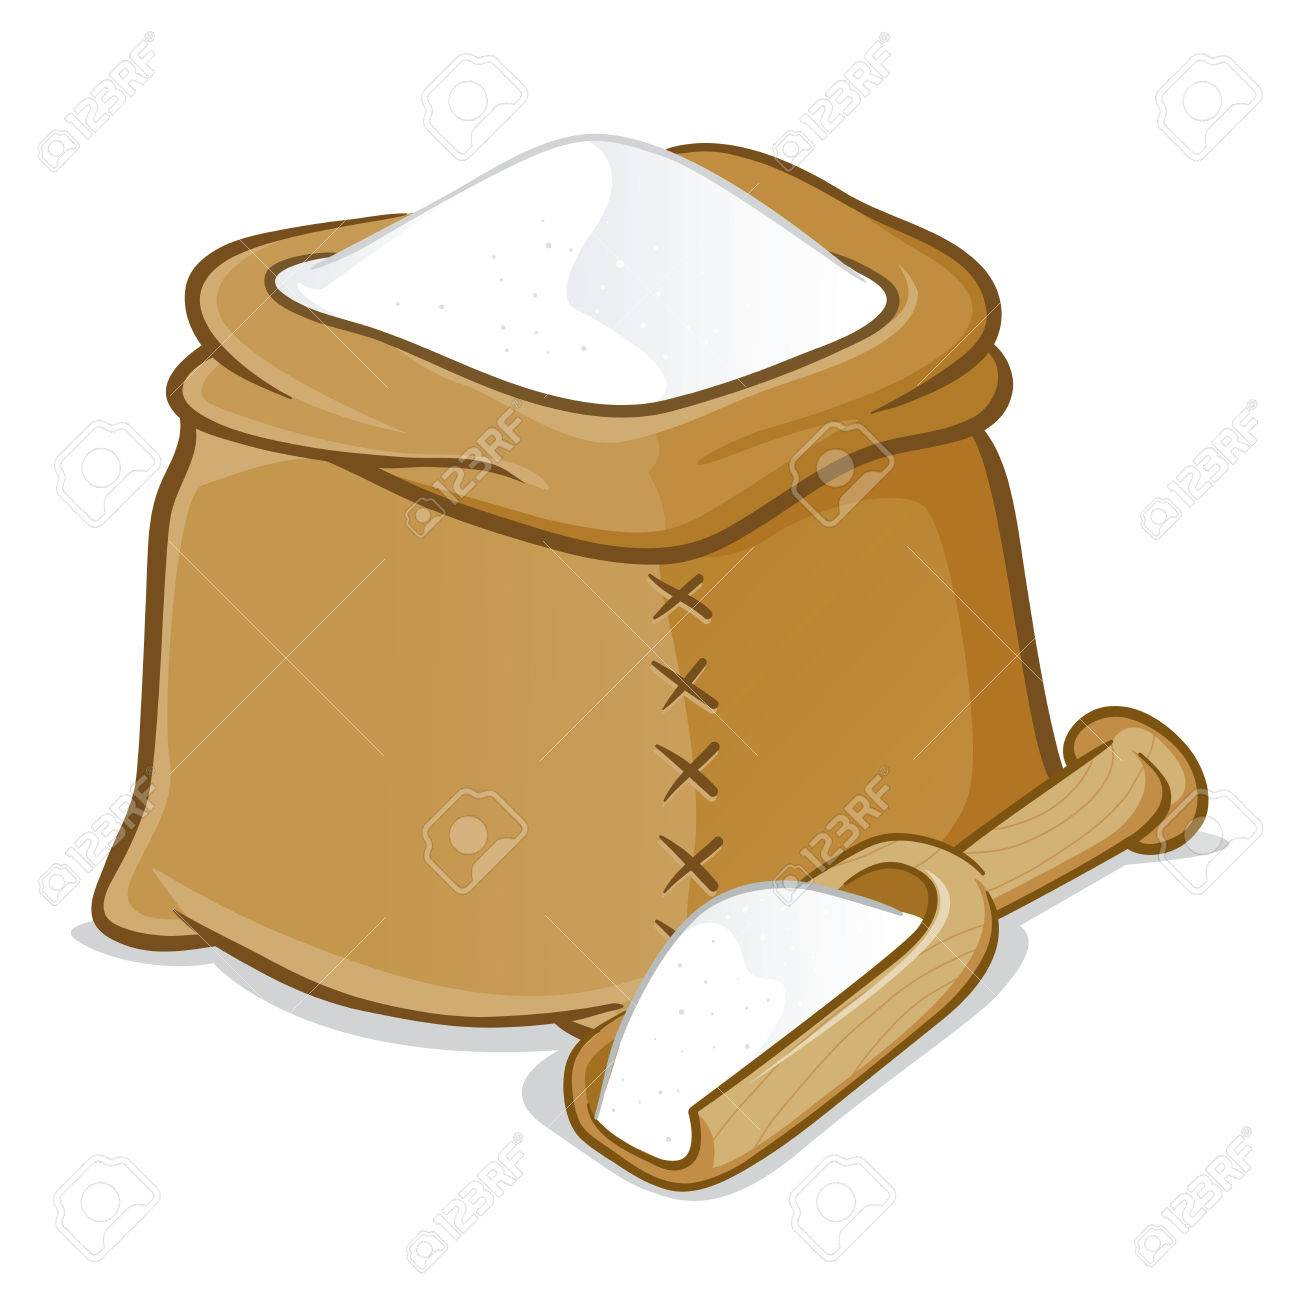 Vector Stock Of A Sack Full Of Flour With Wooden Scoop Royalty Free